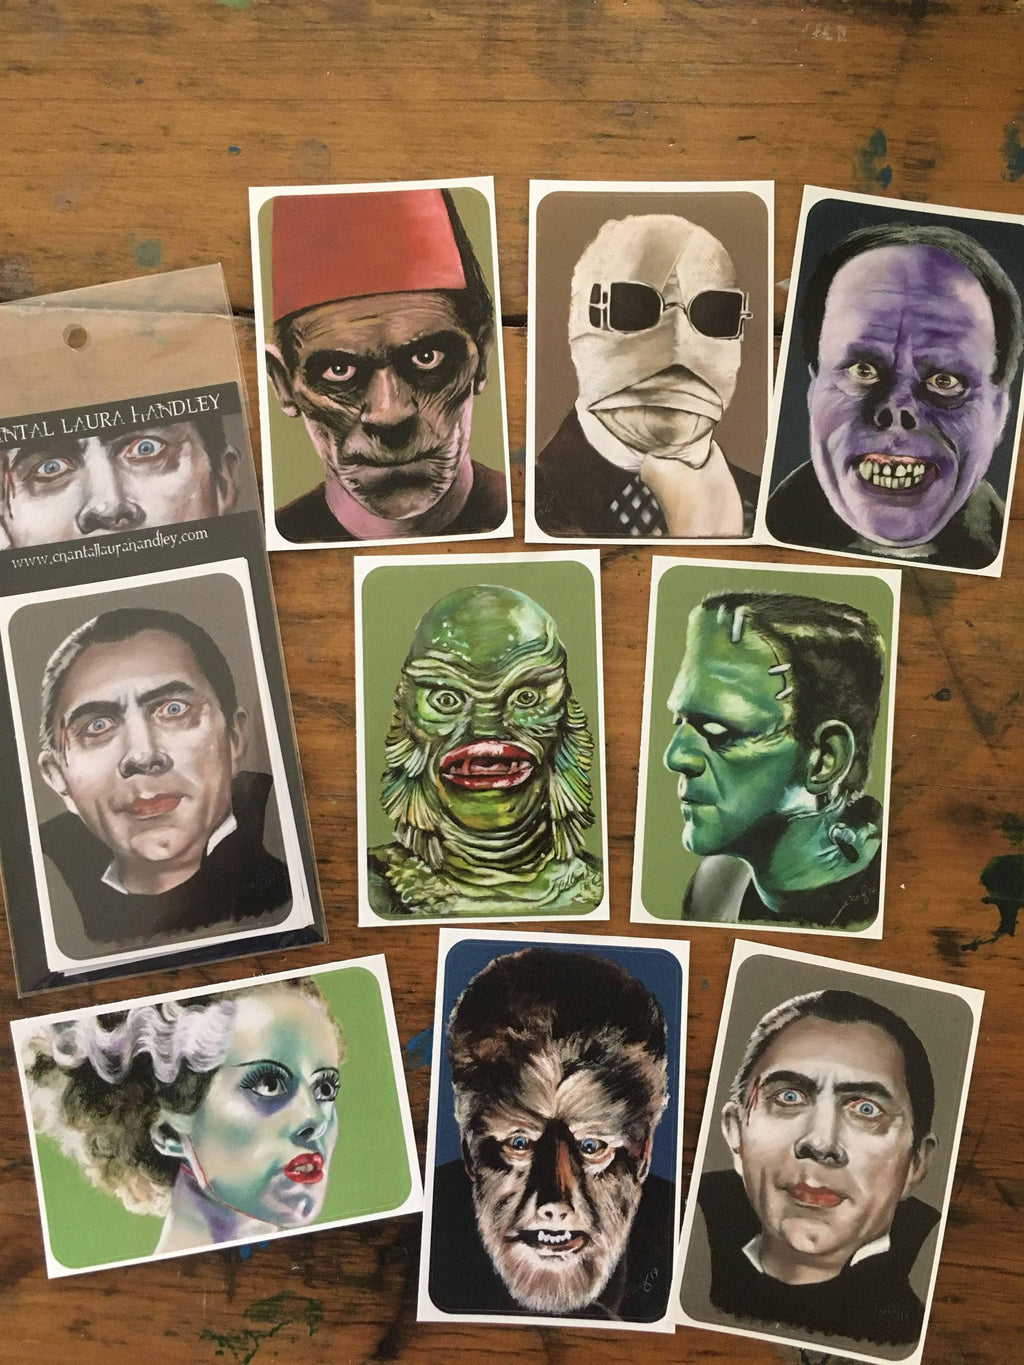 UNIVERSAL MONSTERS Horror Art Sticker Set - ChantalLauraHandley